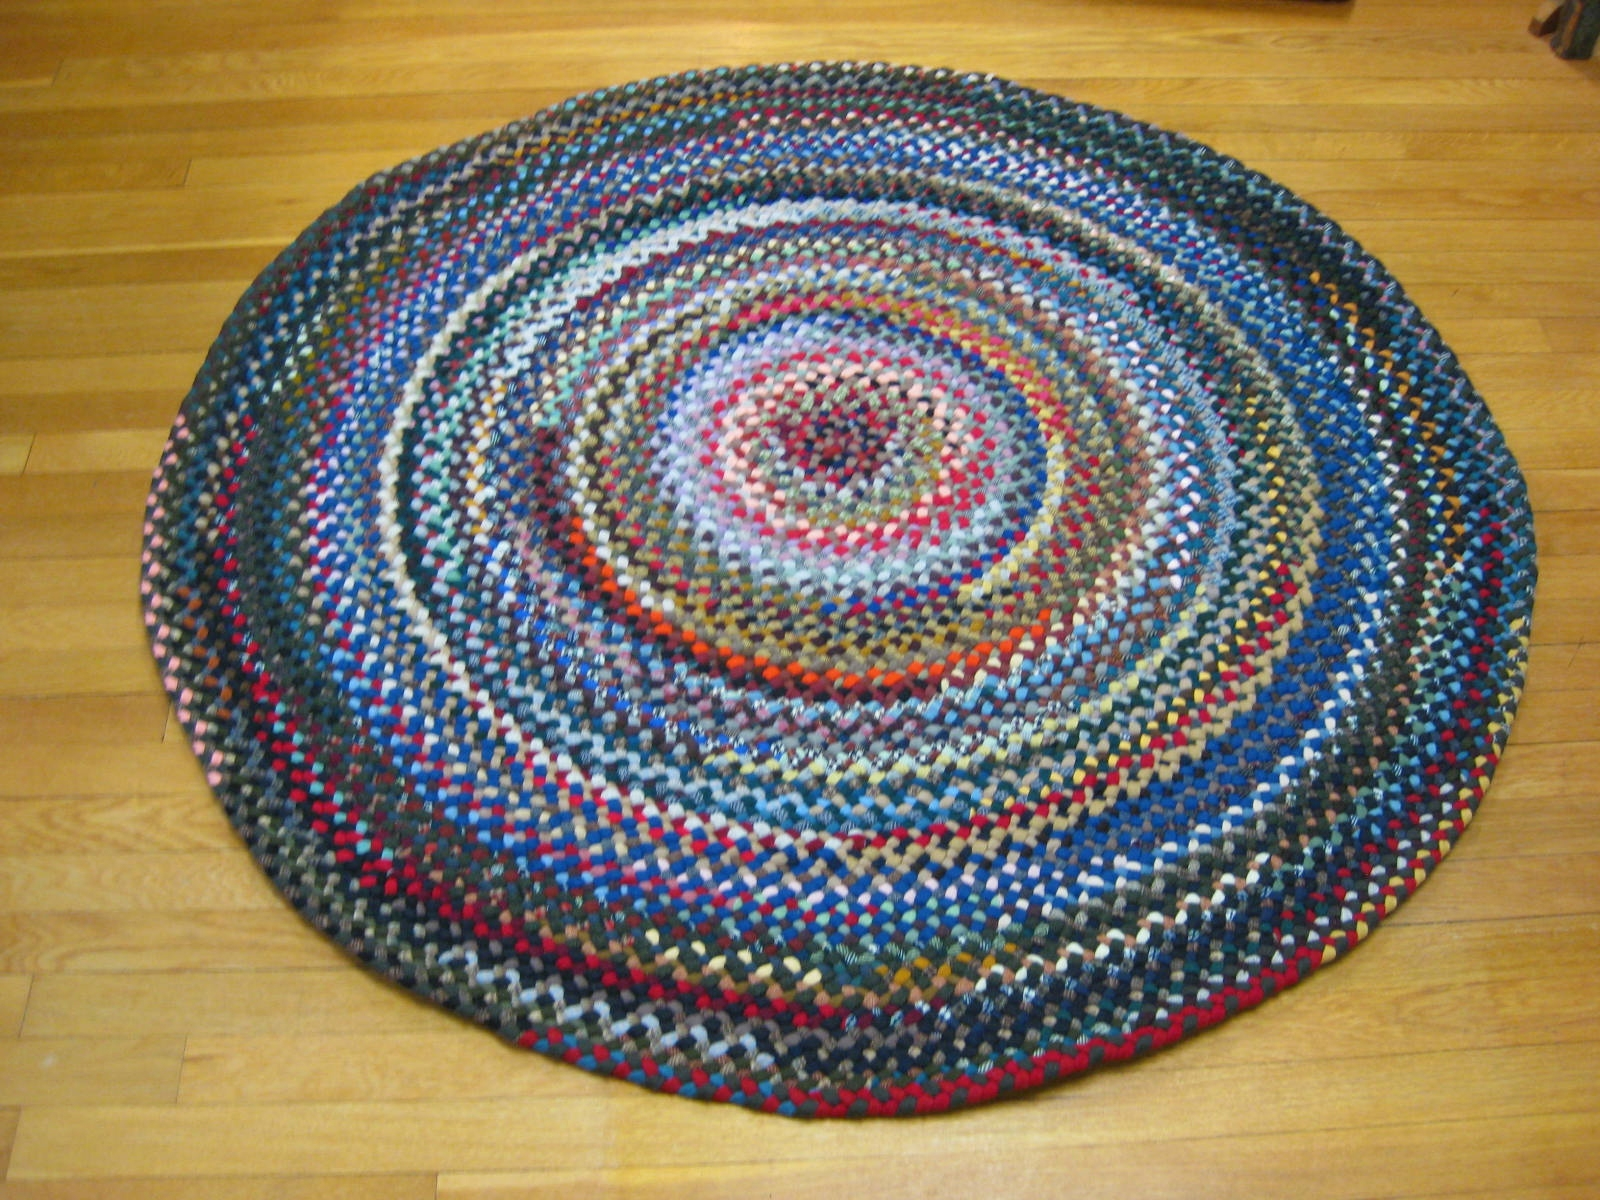 45 Wool Round Braided Rug Country Braid House Throughout Round Wool Rugs (Image 2 of 15)